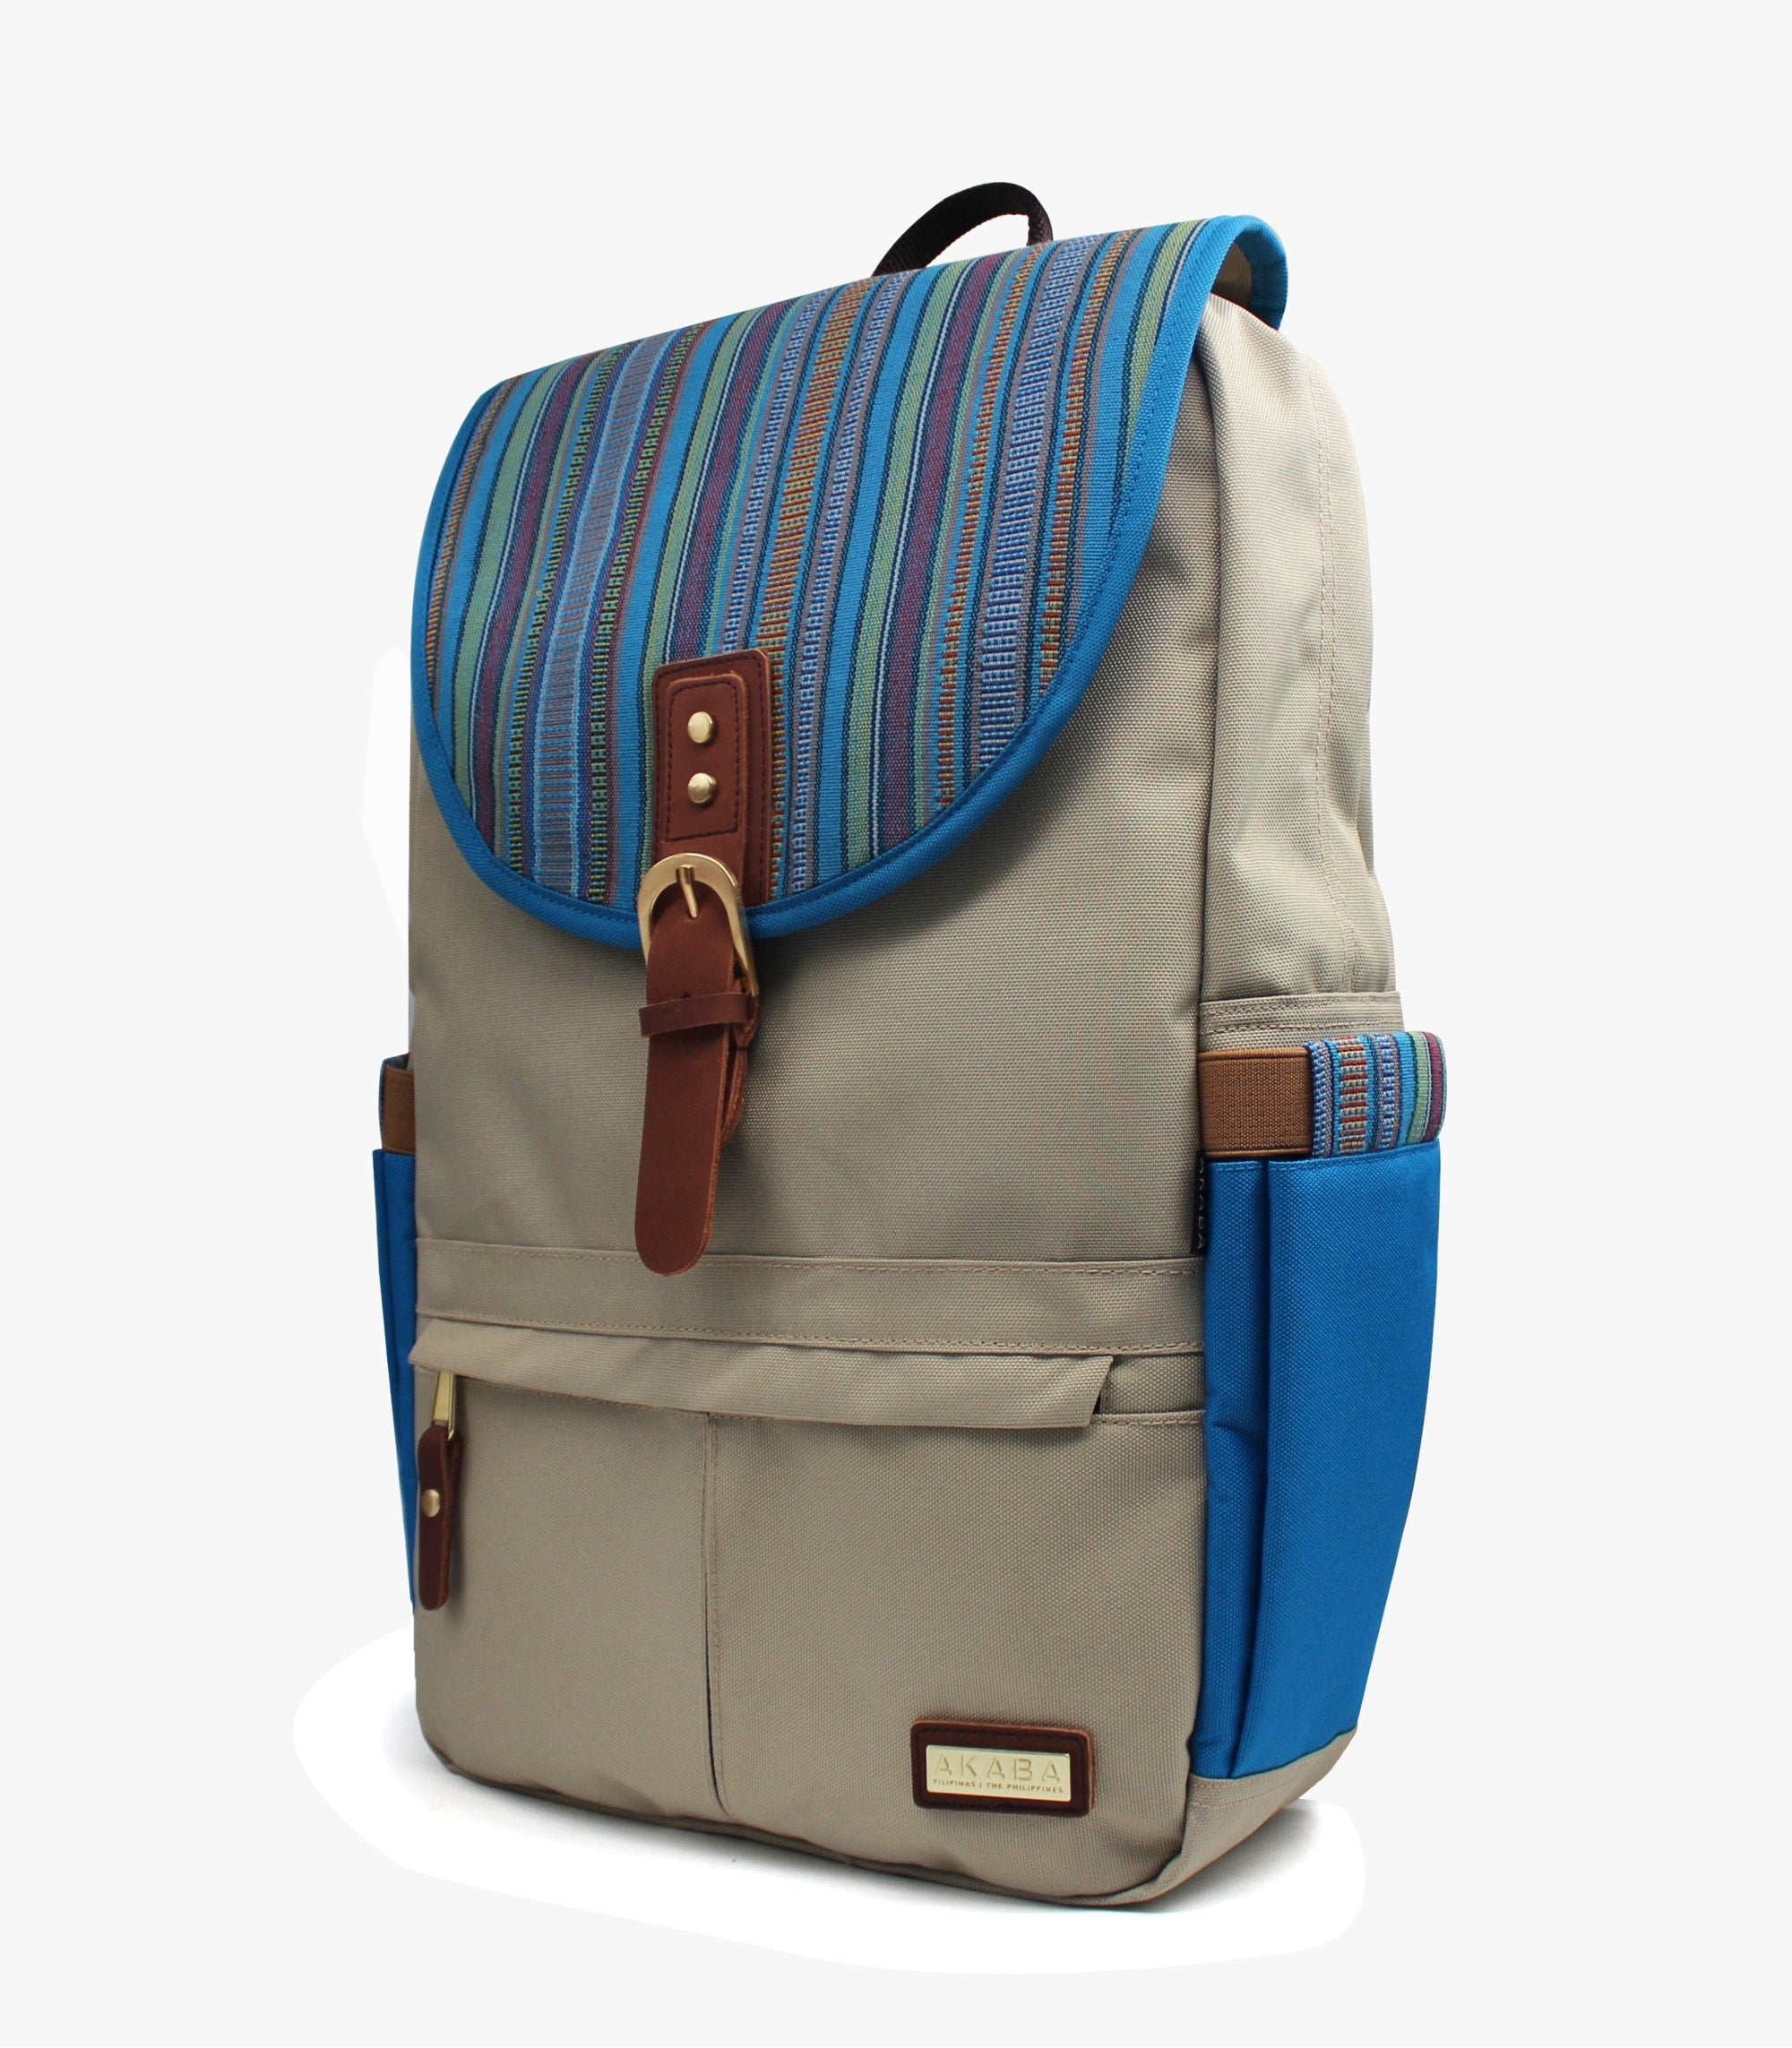 Camino Dos Backpack - AKABA - Blue Cerulean Side